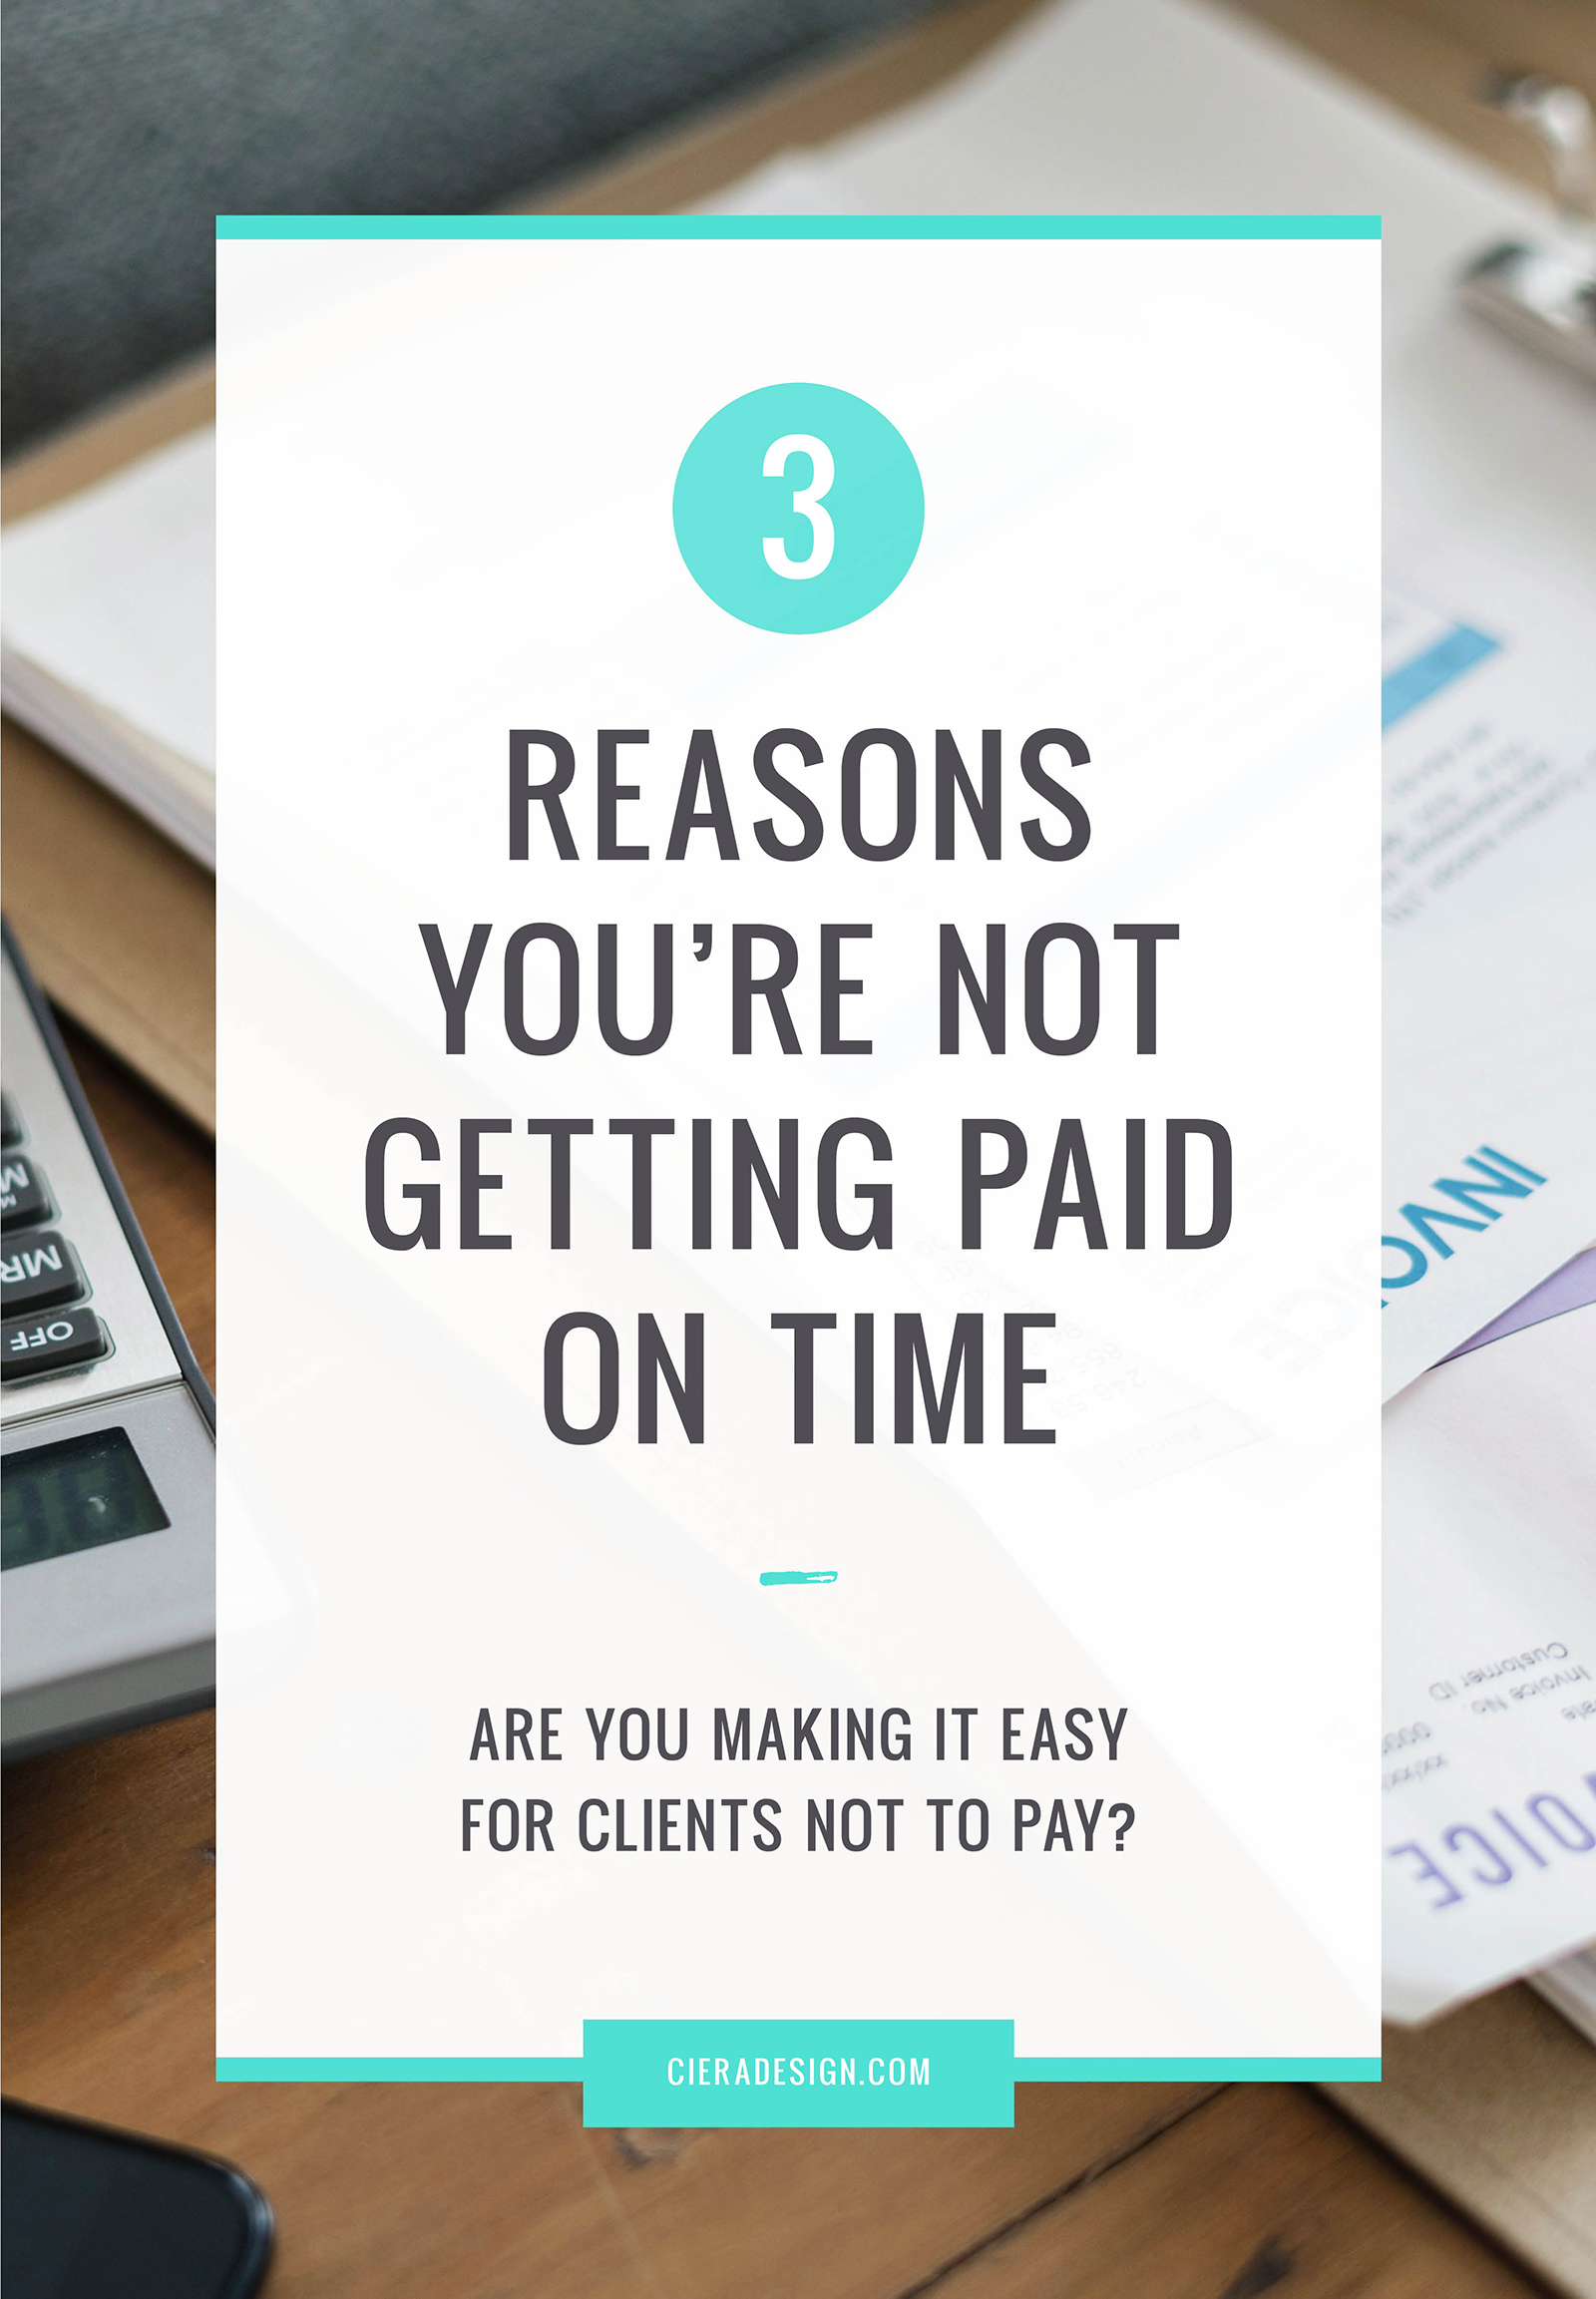 Are You Making It Easy For Clients Not To Pay? Here's three reasons you are not getting paid on time.